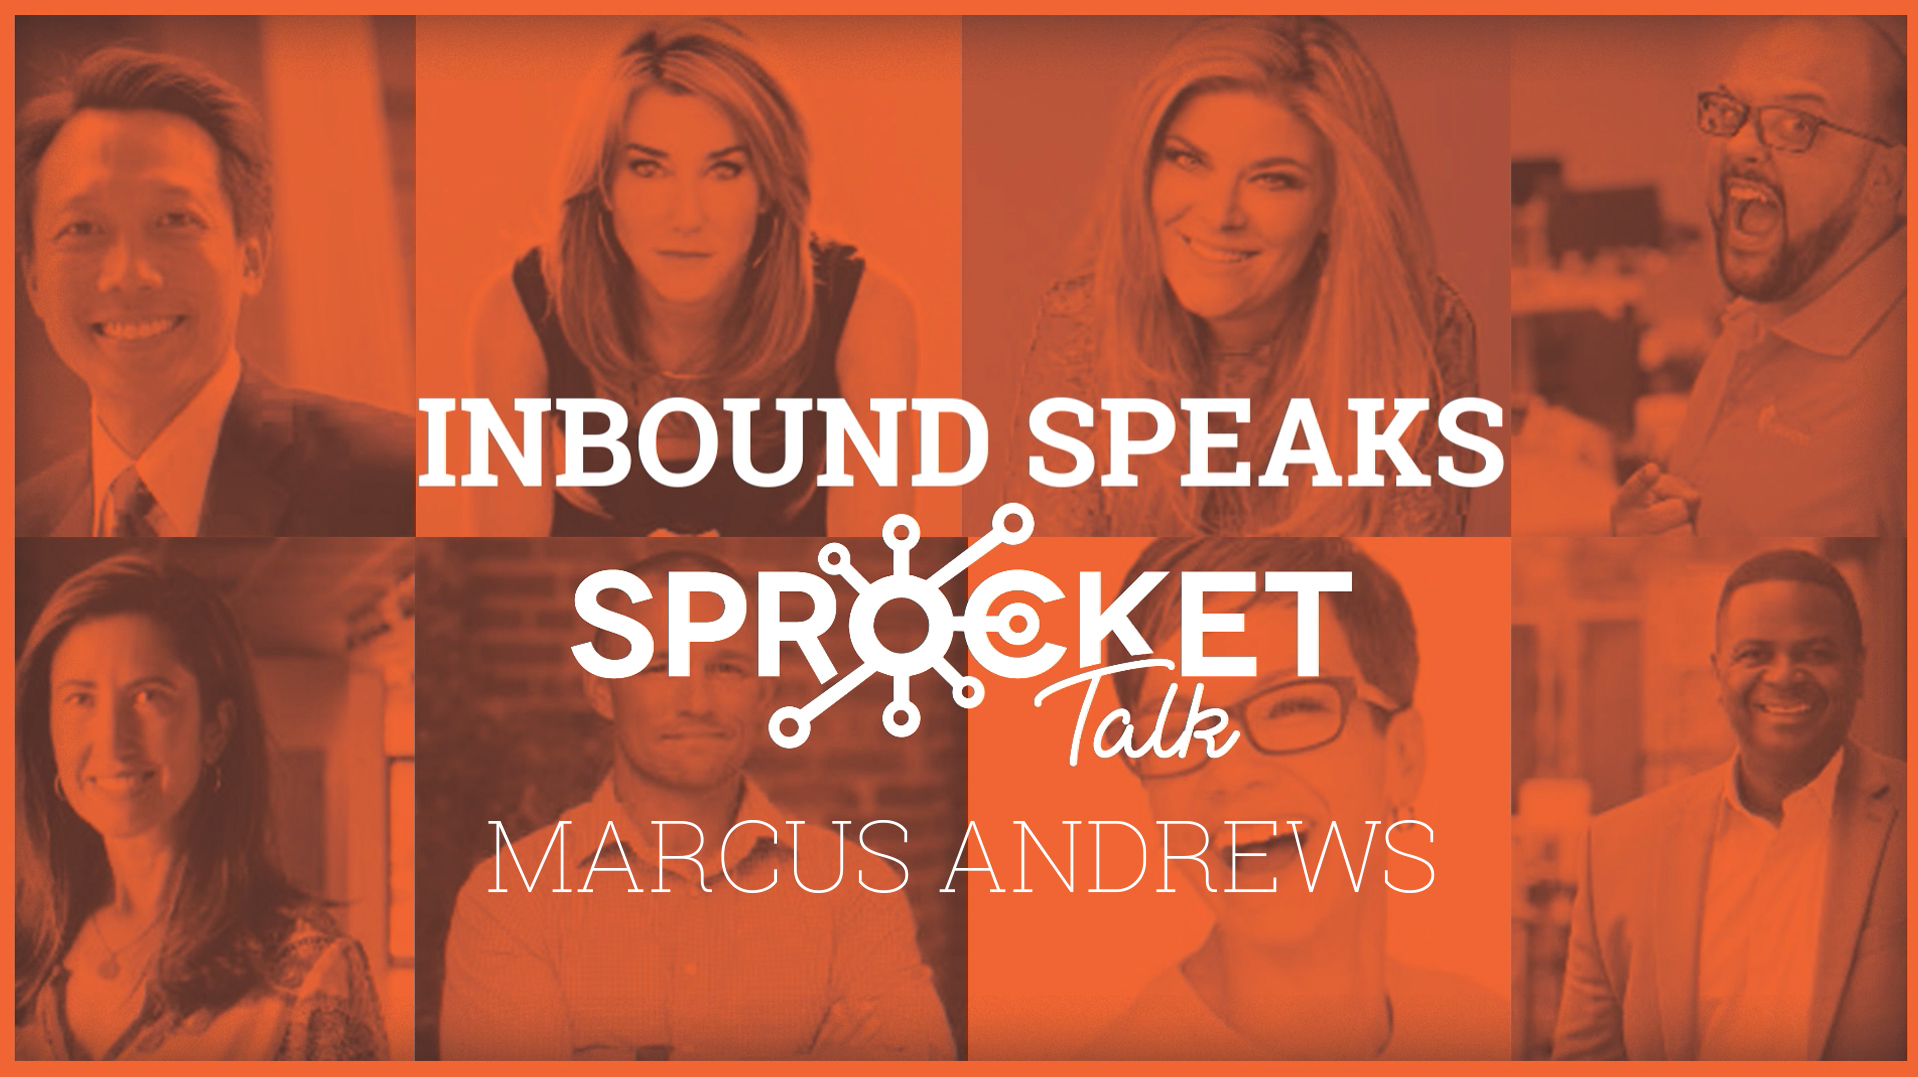 Marcus Andrews The Customer Revolution—What Empowered Customers Want, How to Build Your Flywheel Around Them, and Why They Are the New Secret to Growth #Inbound19